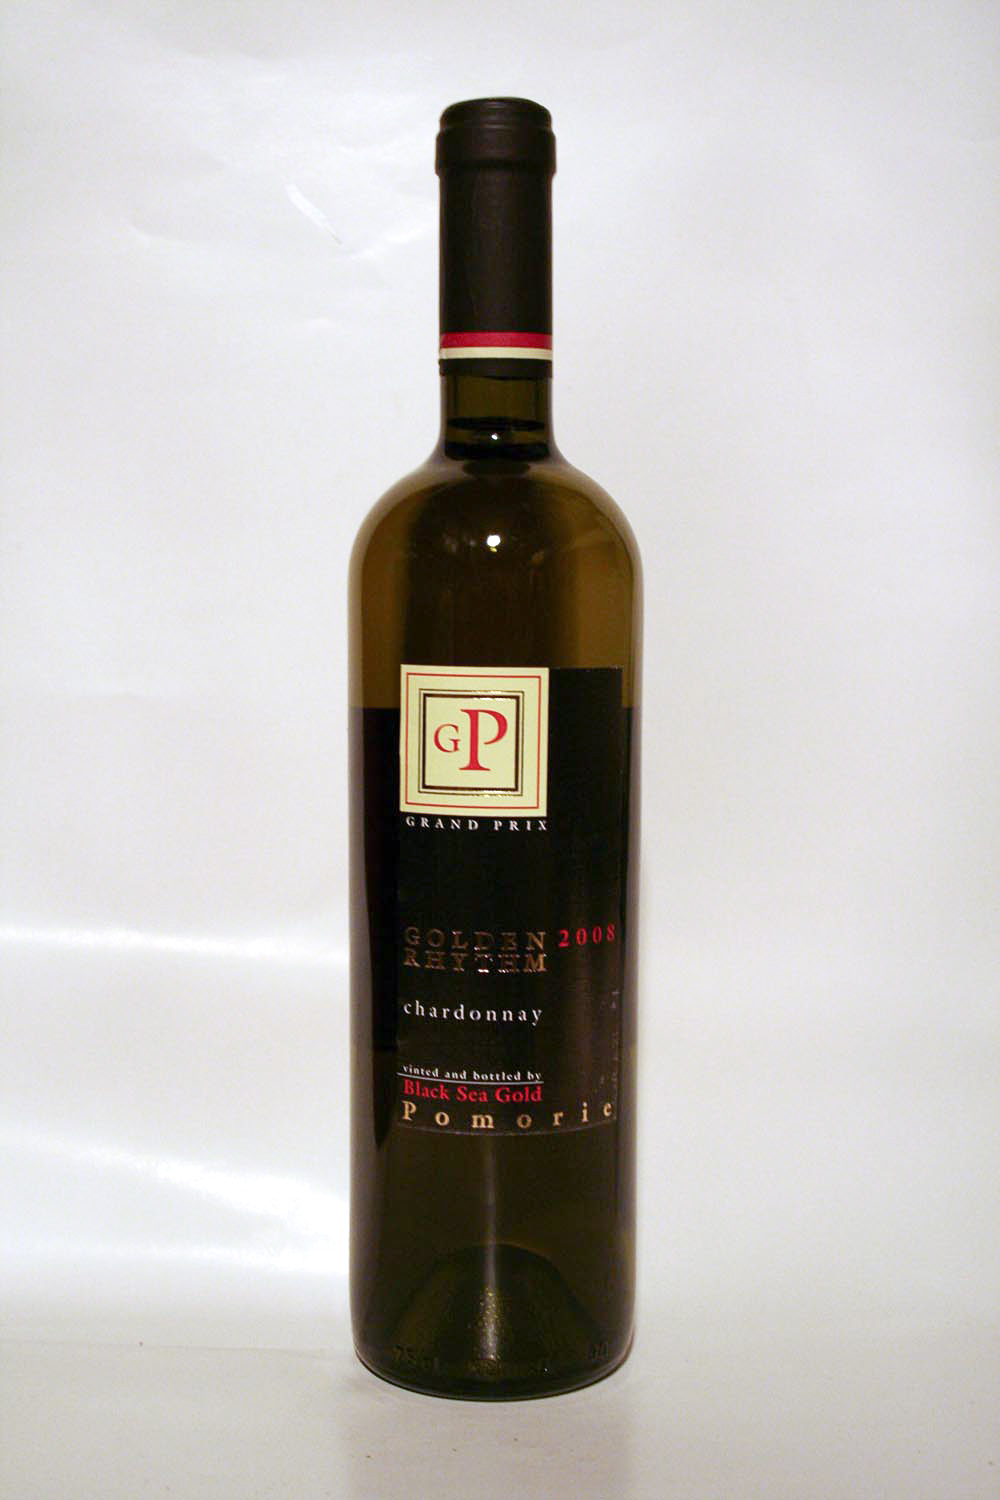 GP Golden Rhythm Chardonnay 2008